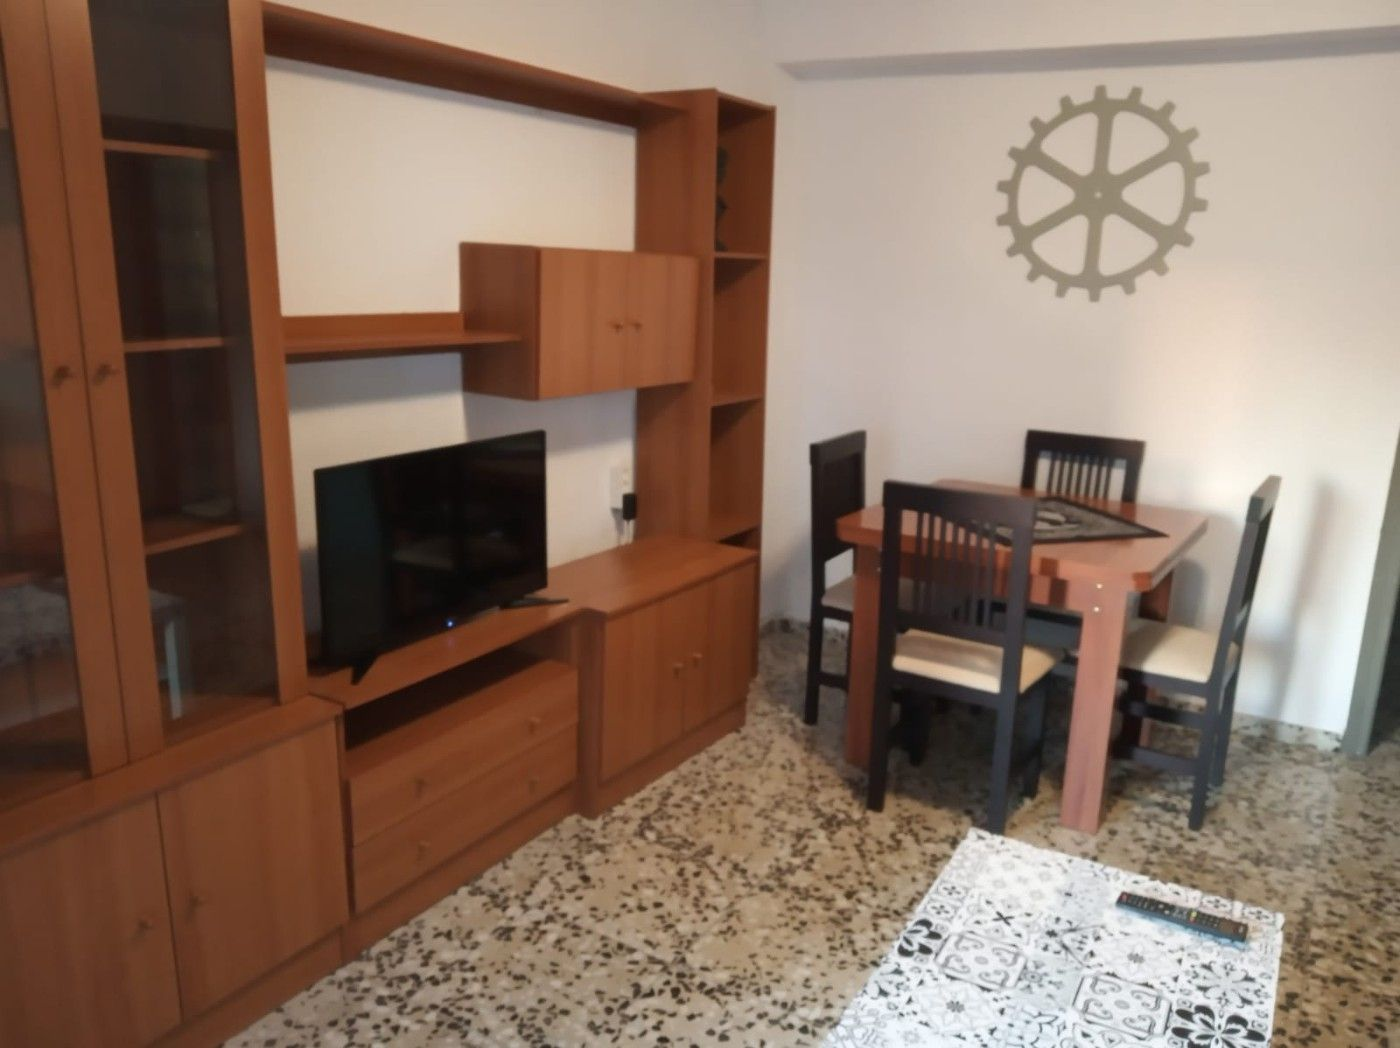 Location Appartement à Xàtiva